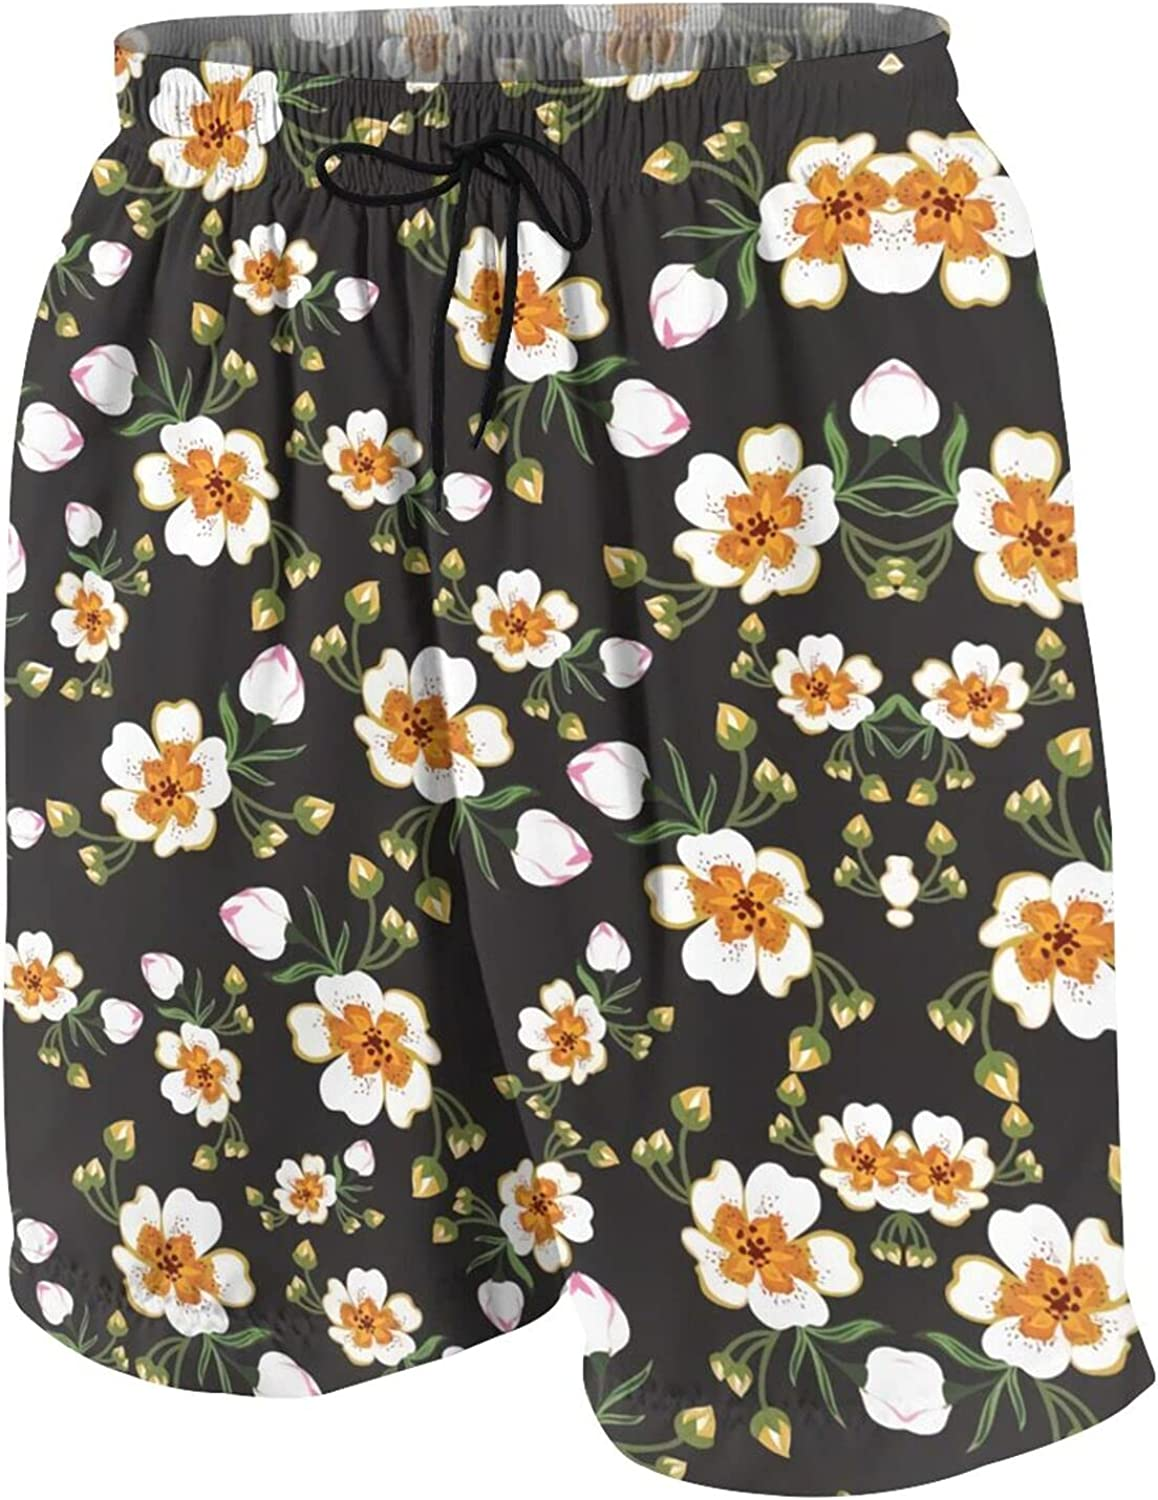 gkvuwhi Little Daisy Swim Brand new Trunks Casual Waist Quick outlet Elastic Dry